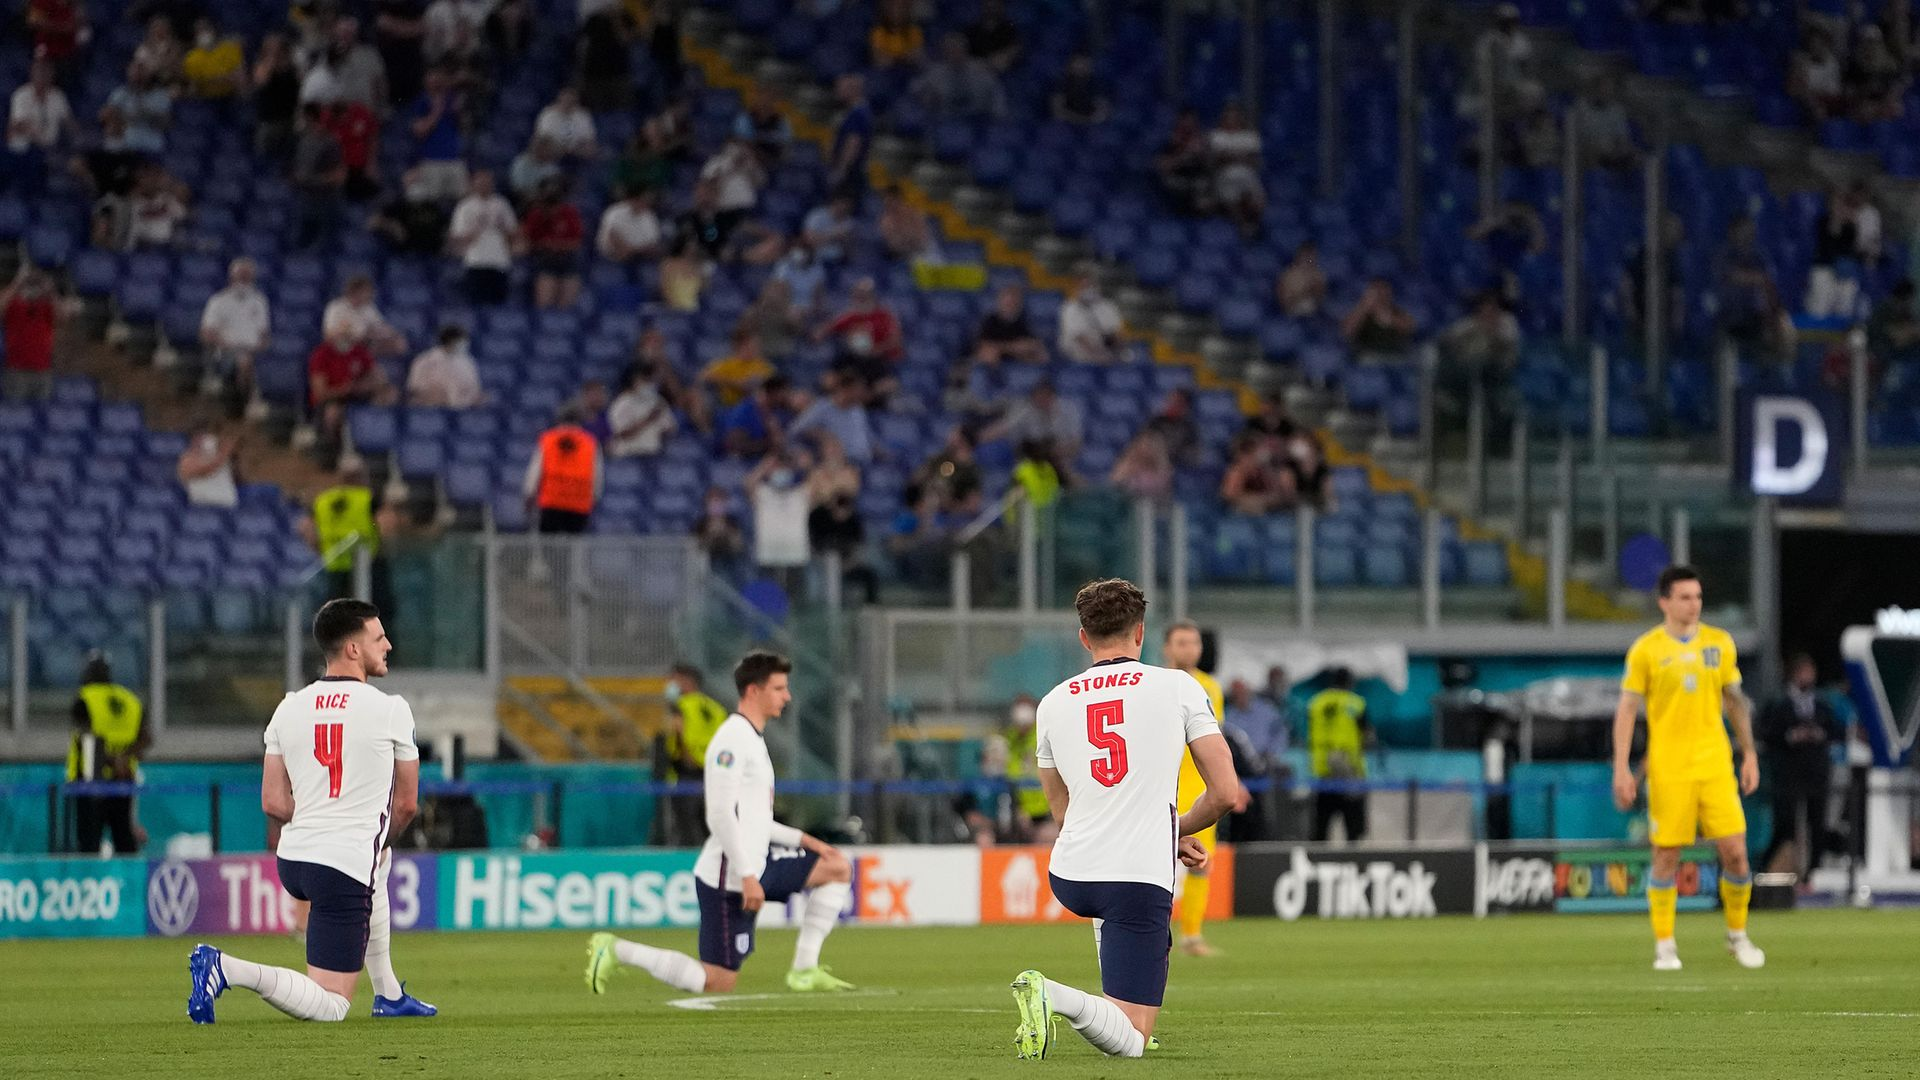 Declan Rice and John Stones of England take a knee while Ukraine players remain standing before their quarter-final - Credit: Photo by Alessandra Tarantino - Pool/Getty Images